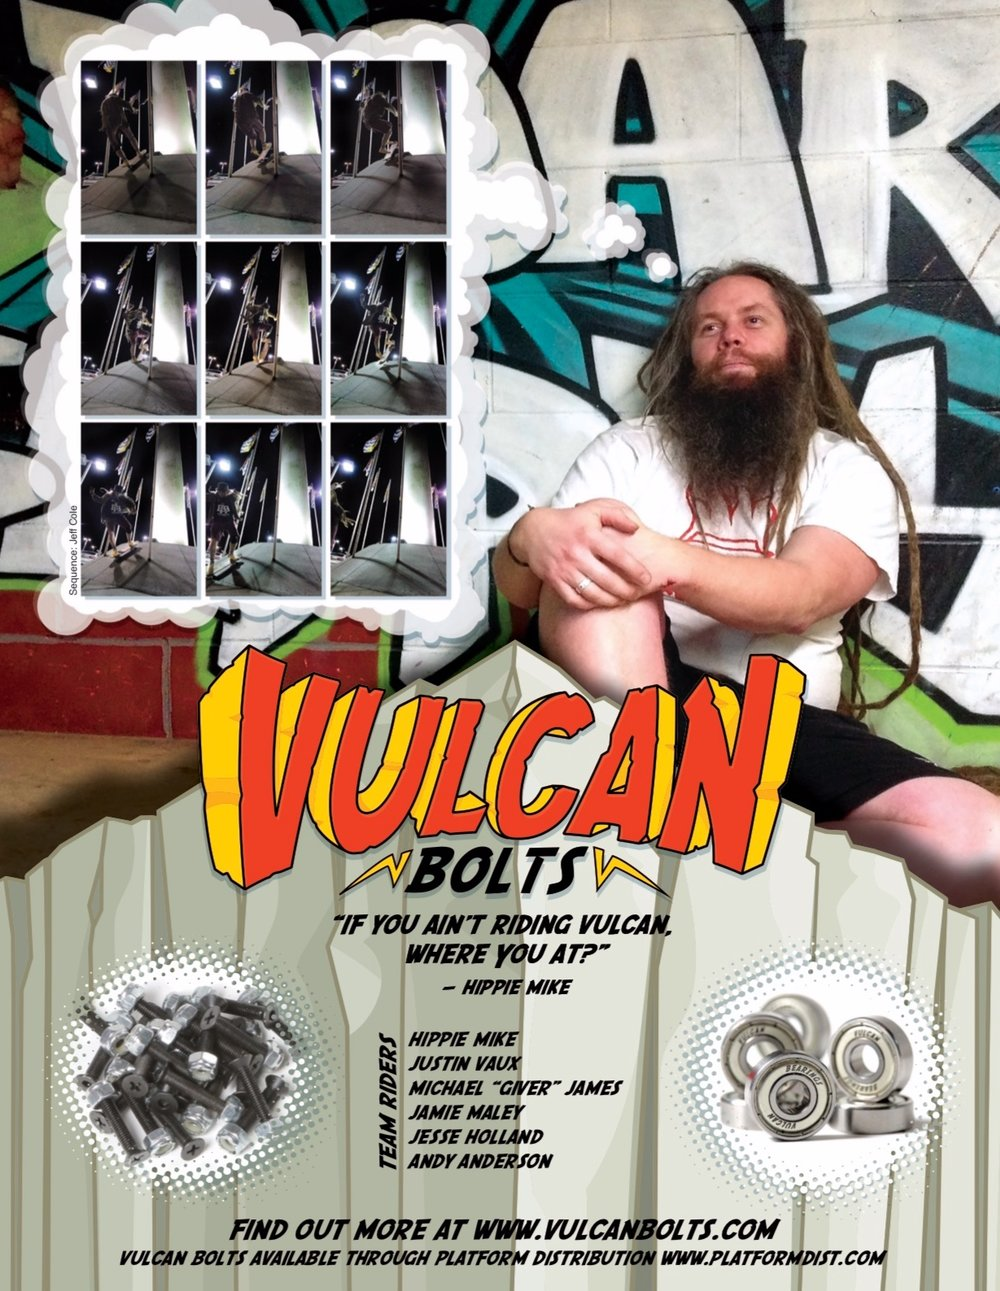 Vulcan Bolts ad in King Skate Mag